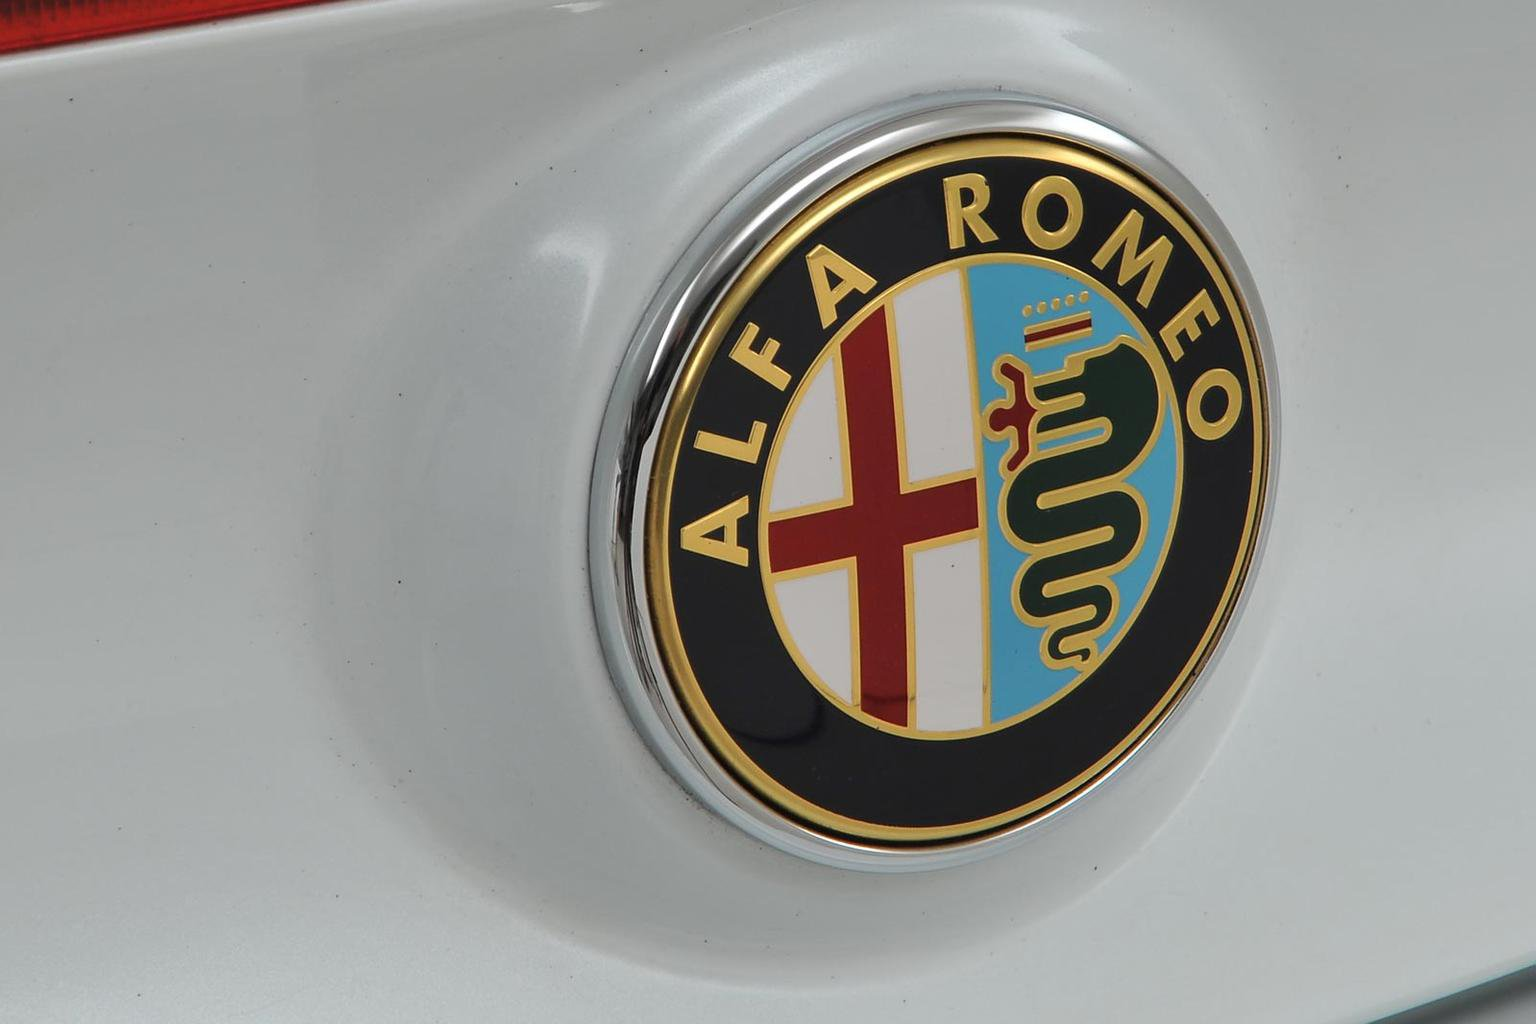 Alfa Romeo firms up plans for next-generation models